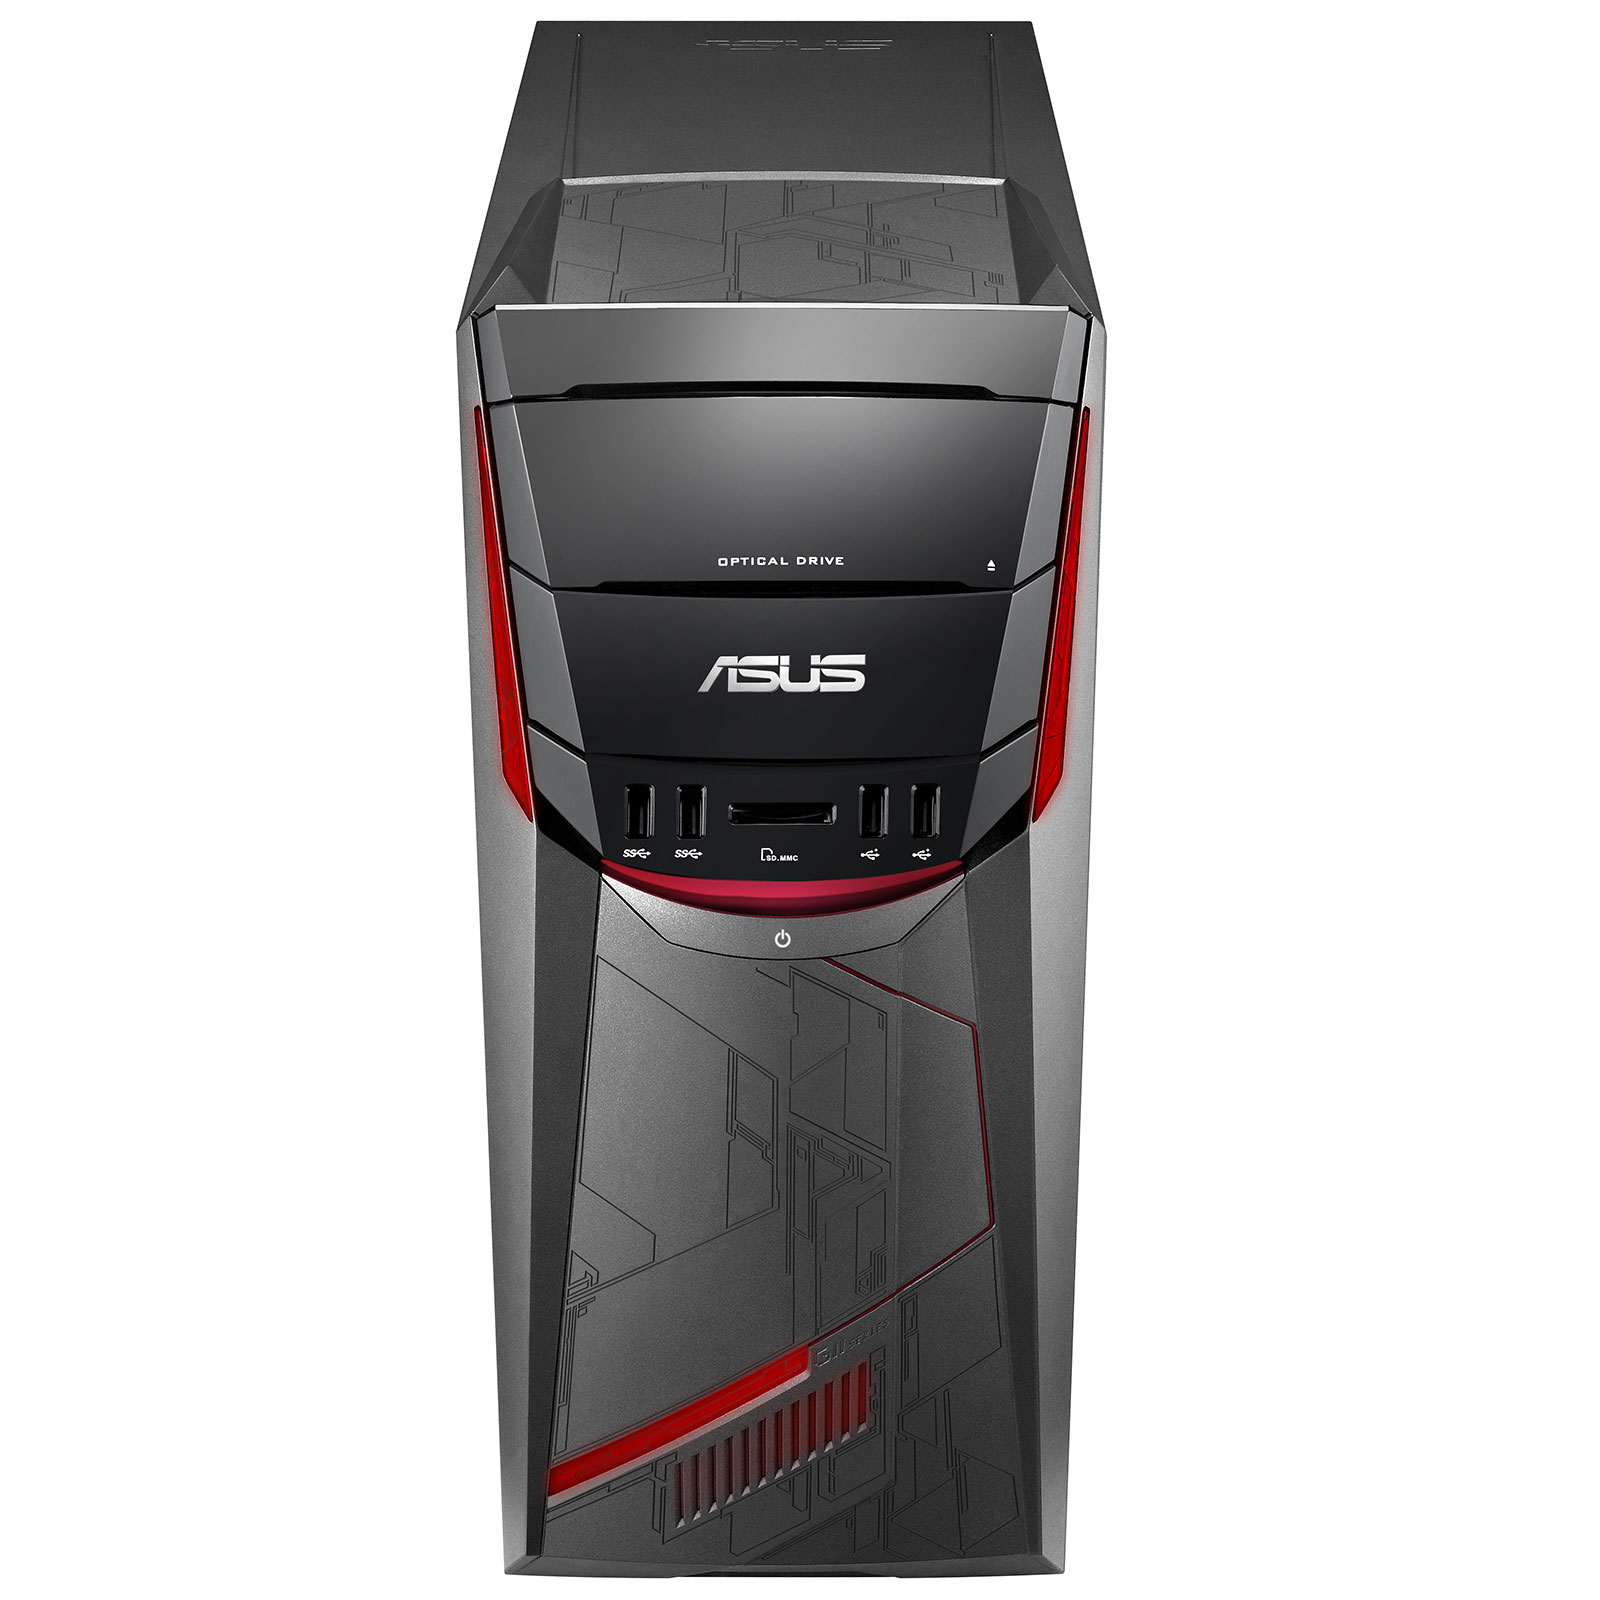 asus g11cd fr023t pc de bureau asus sur ldlc. Black Bedroom Furniture Sets. Home Design Ideas